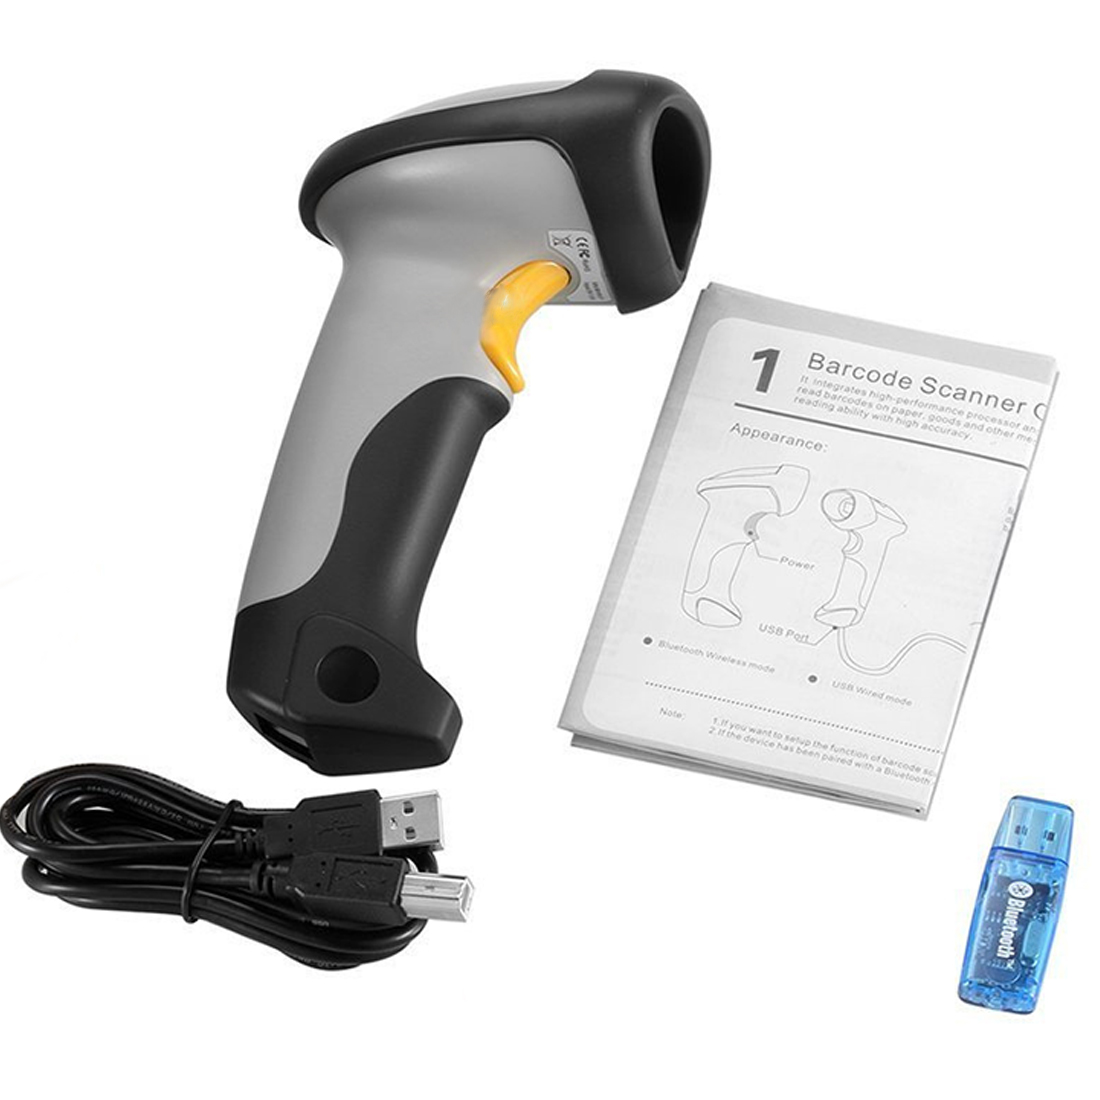 NOYOKERE ABS+TPU CT10 Wireless Bluetooth 1D Barcode Scanner Mini Barcode reader for iOS Android windows System bar scanner